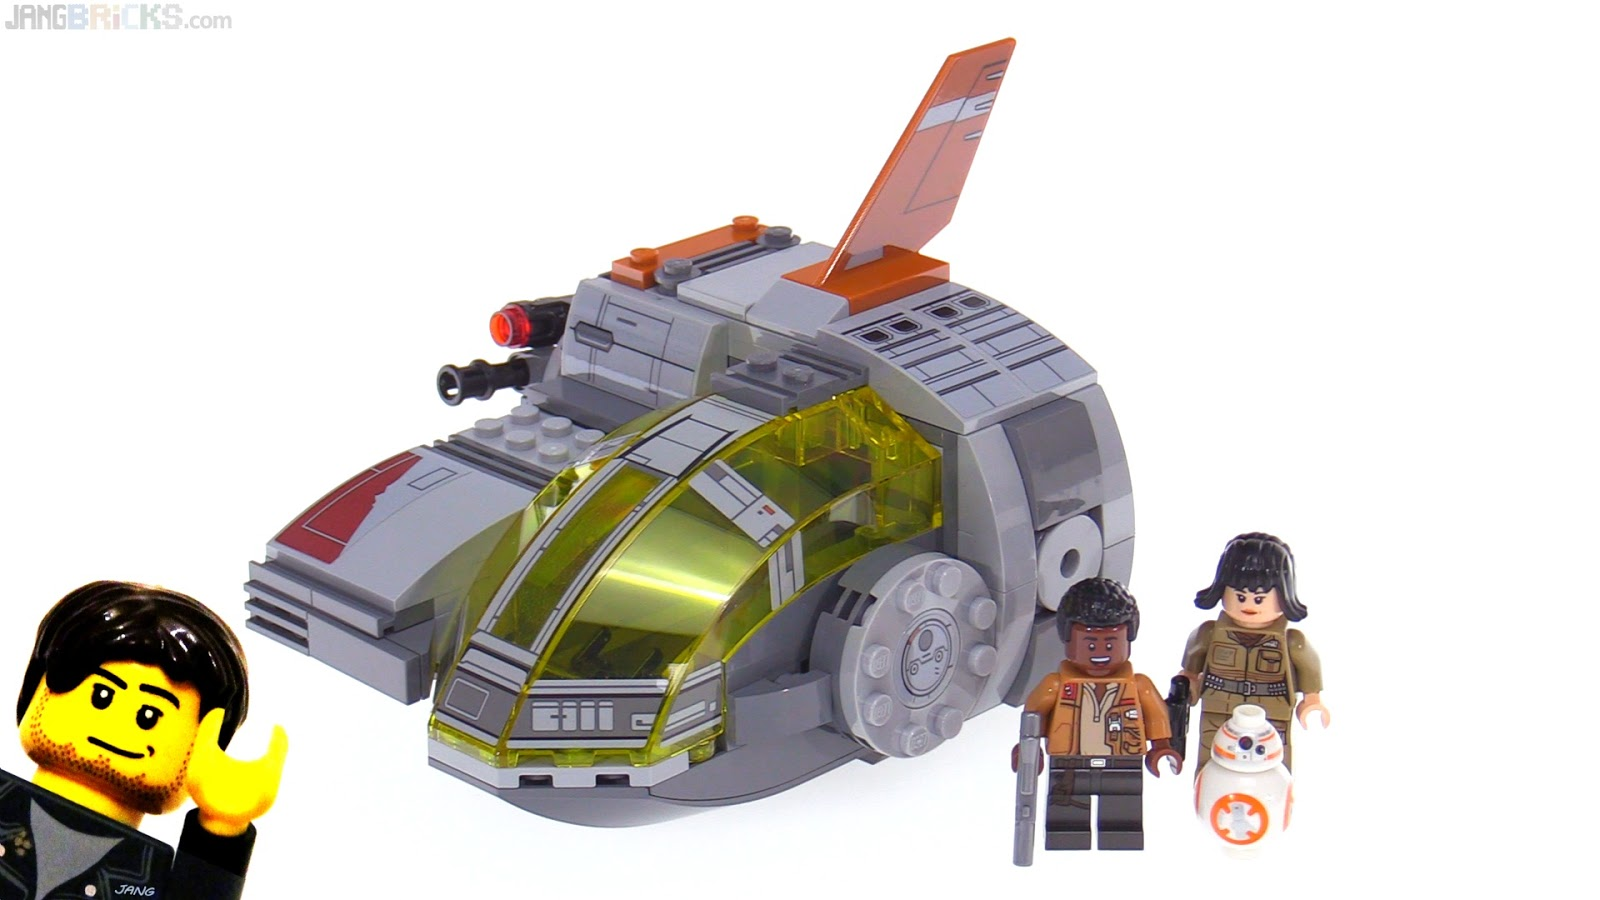 Can You Make Money From Amazon Reviews Lego Dropship Moc Instructions